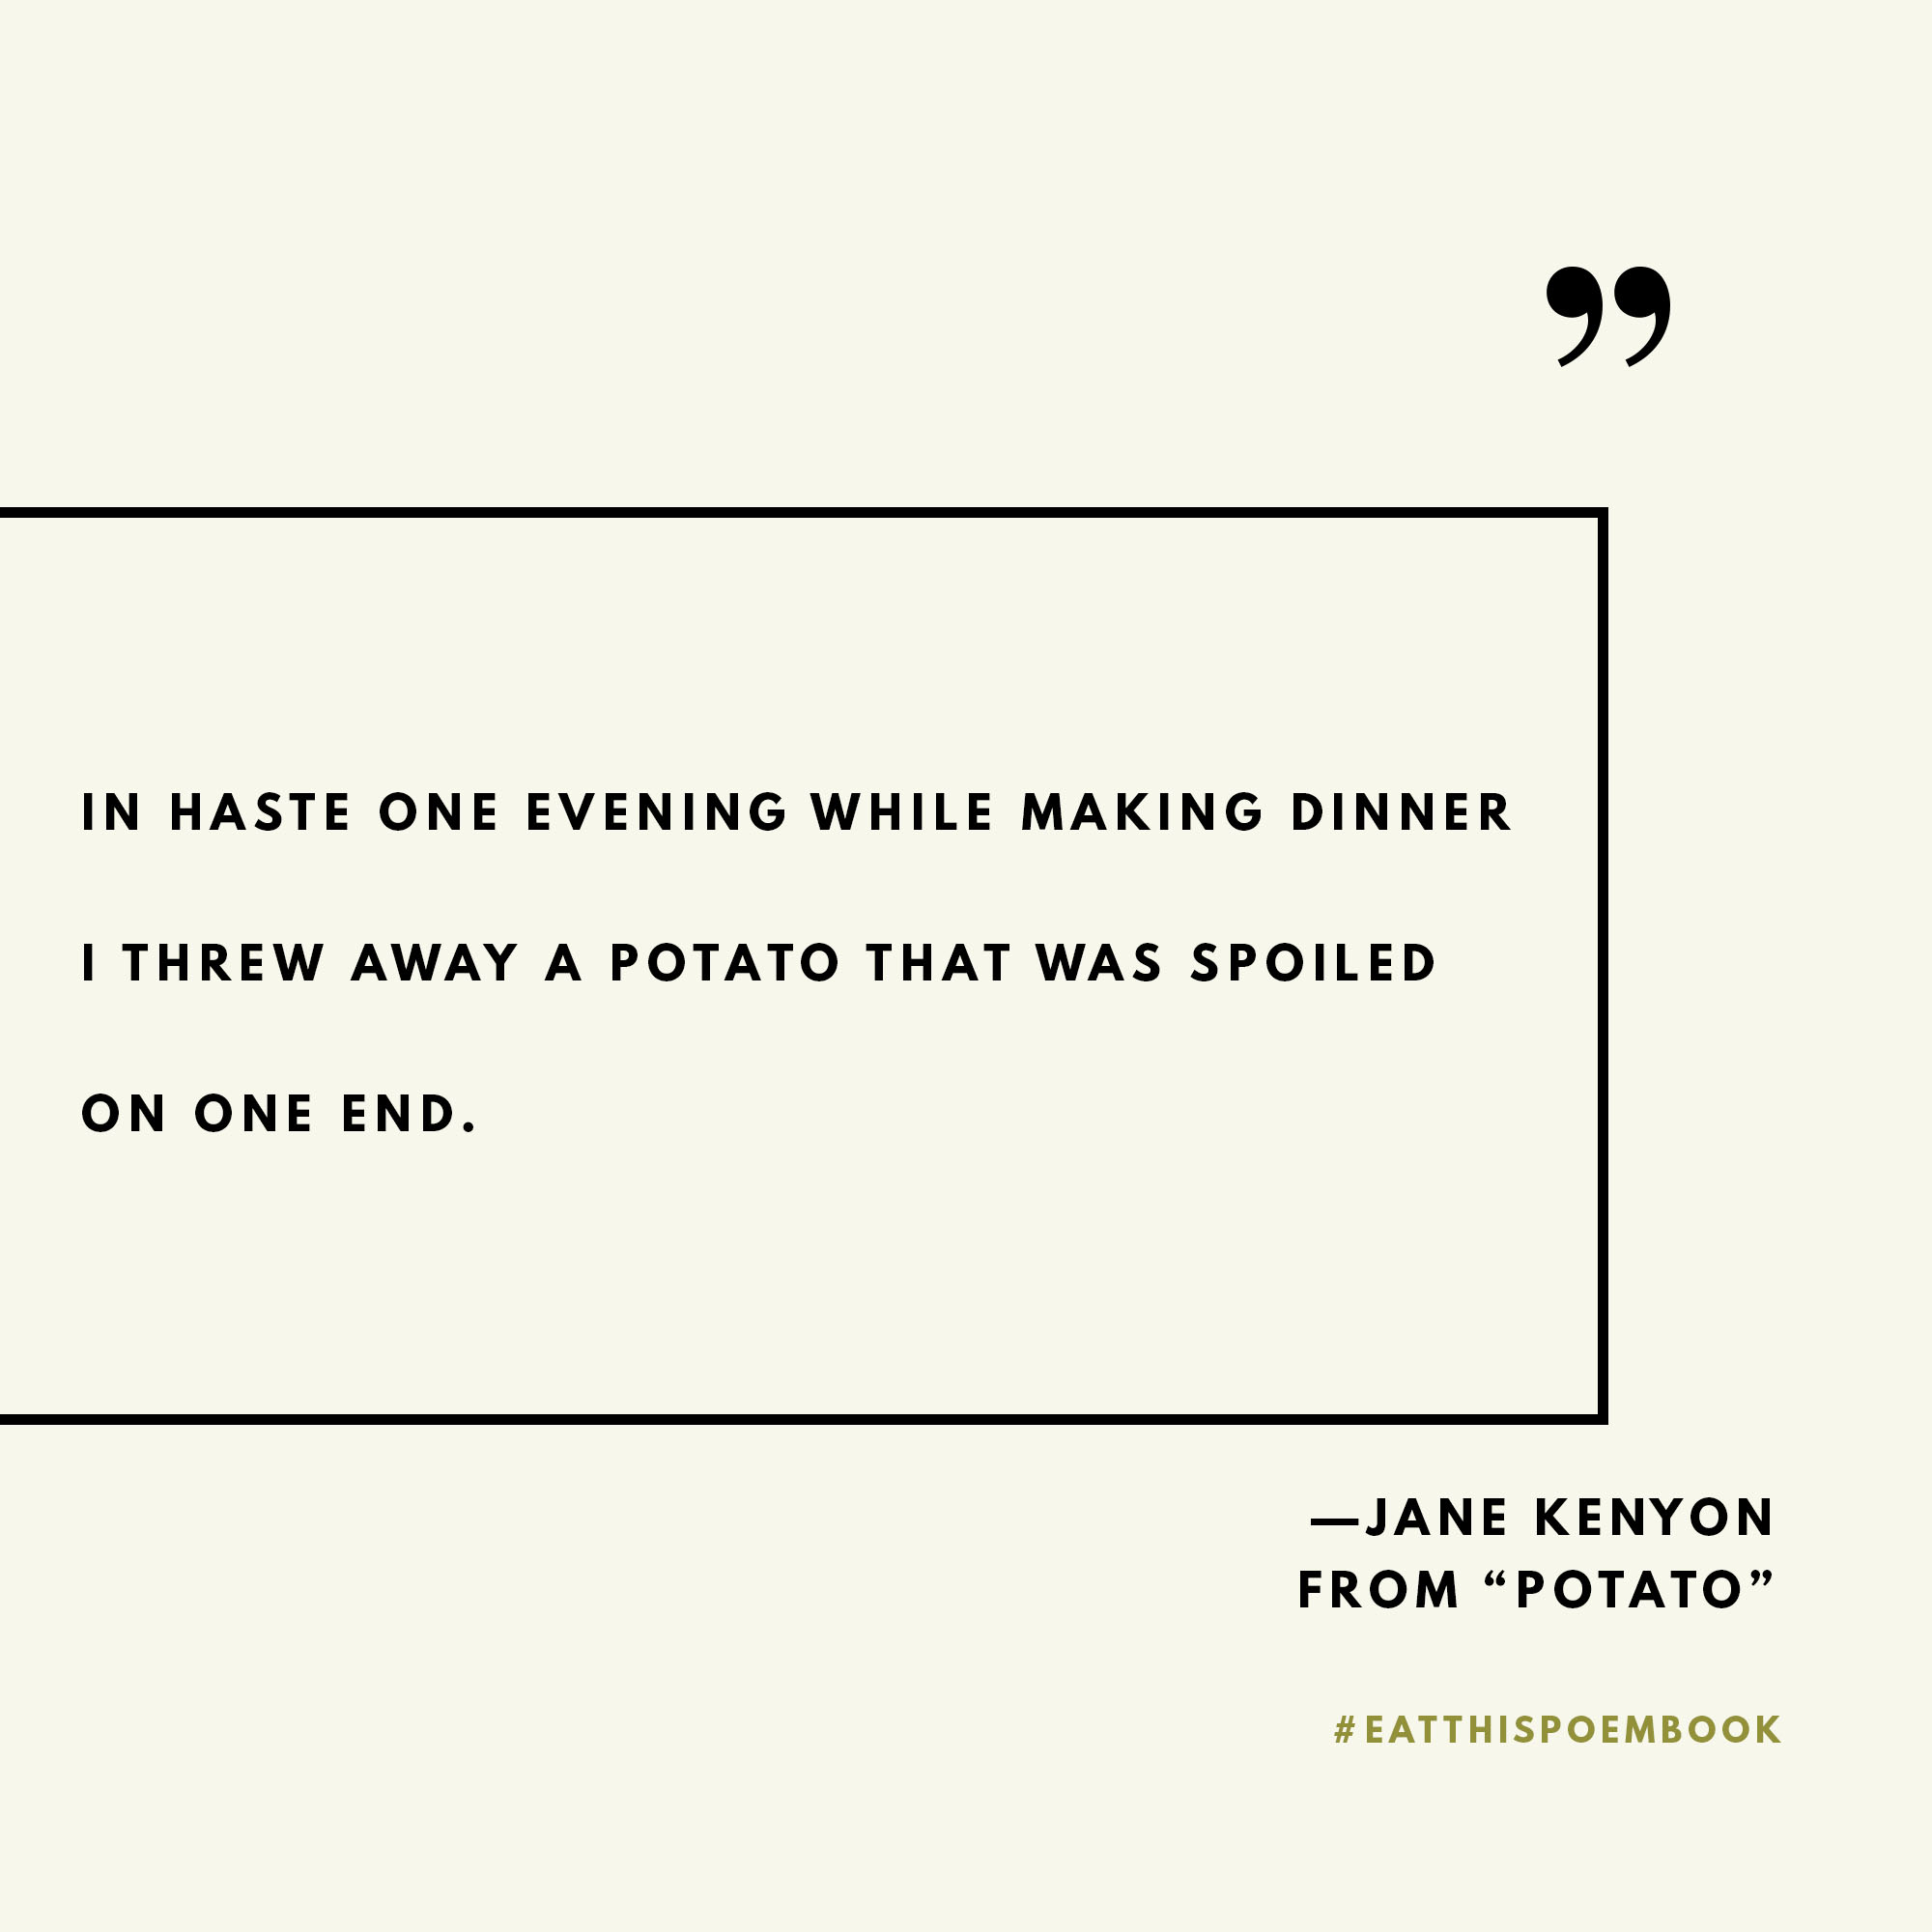 Celebrating National Poetry Month with the Eat This Poem cookbook